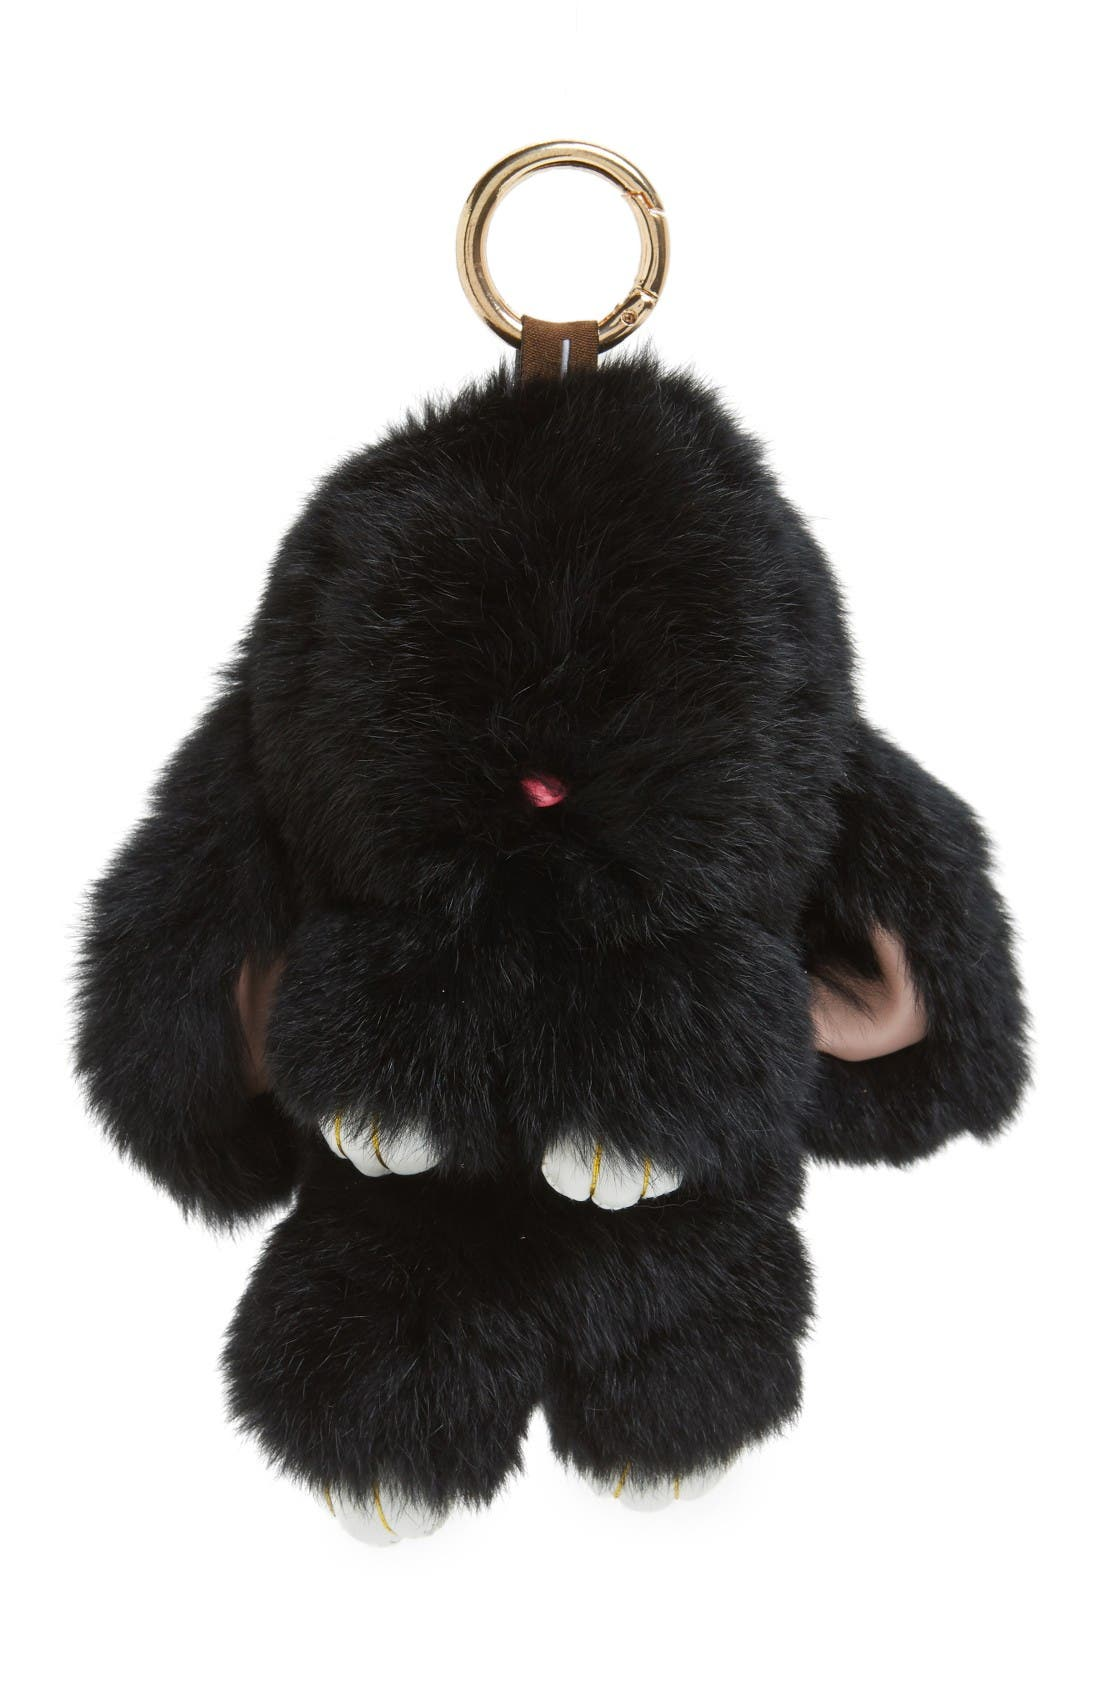 Alternate Image 1 Selected - Natasha Couture Genuine Rabbit Fur Bag Charm